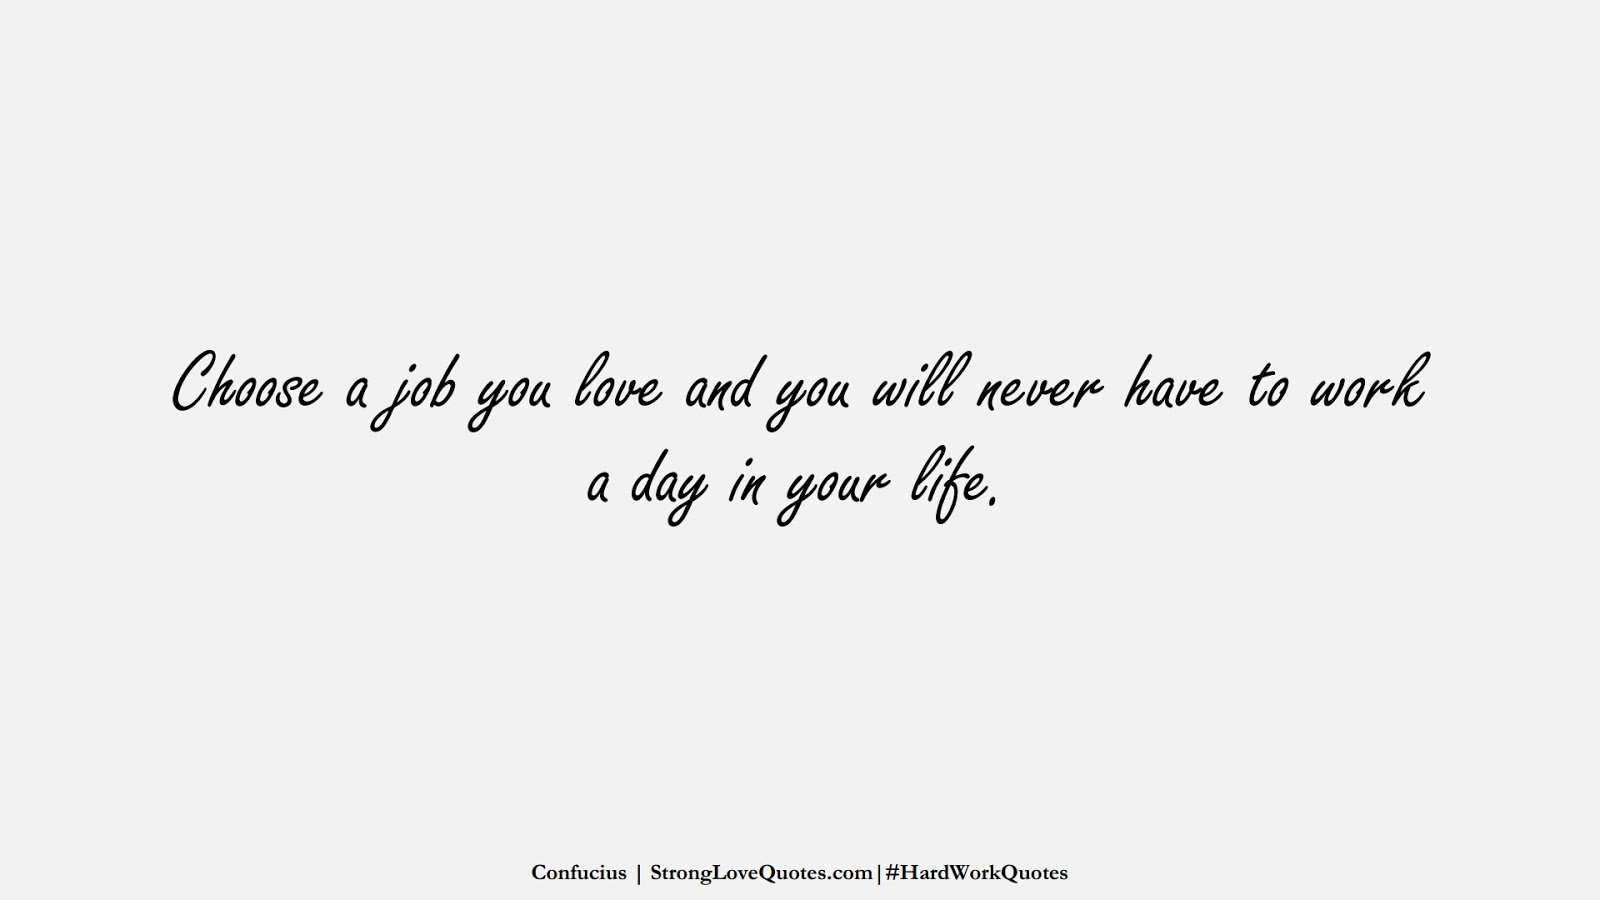 Choose a job you love and you will never have to work a day in your life. (Confucius);  #HardWorkQuotes